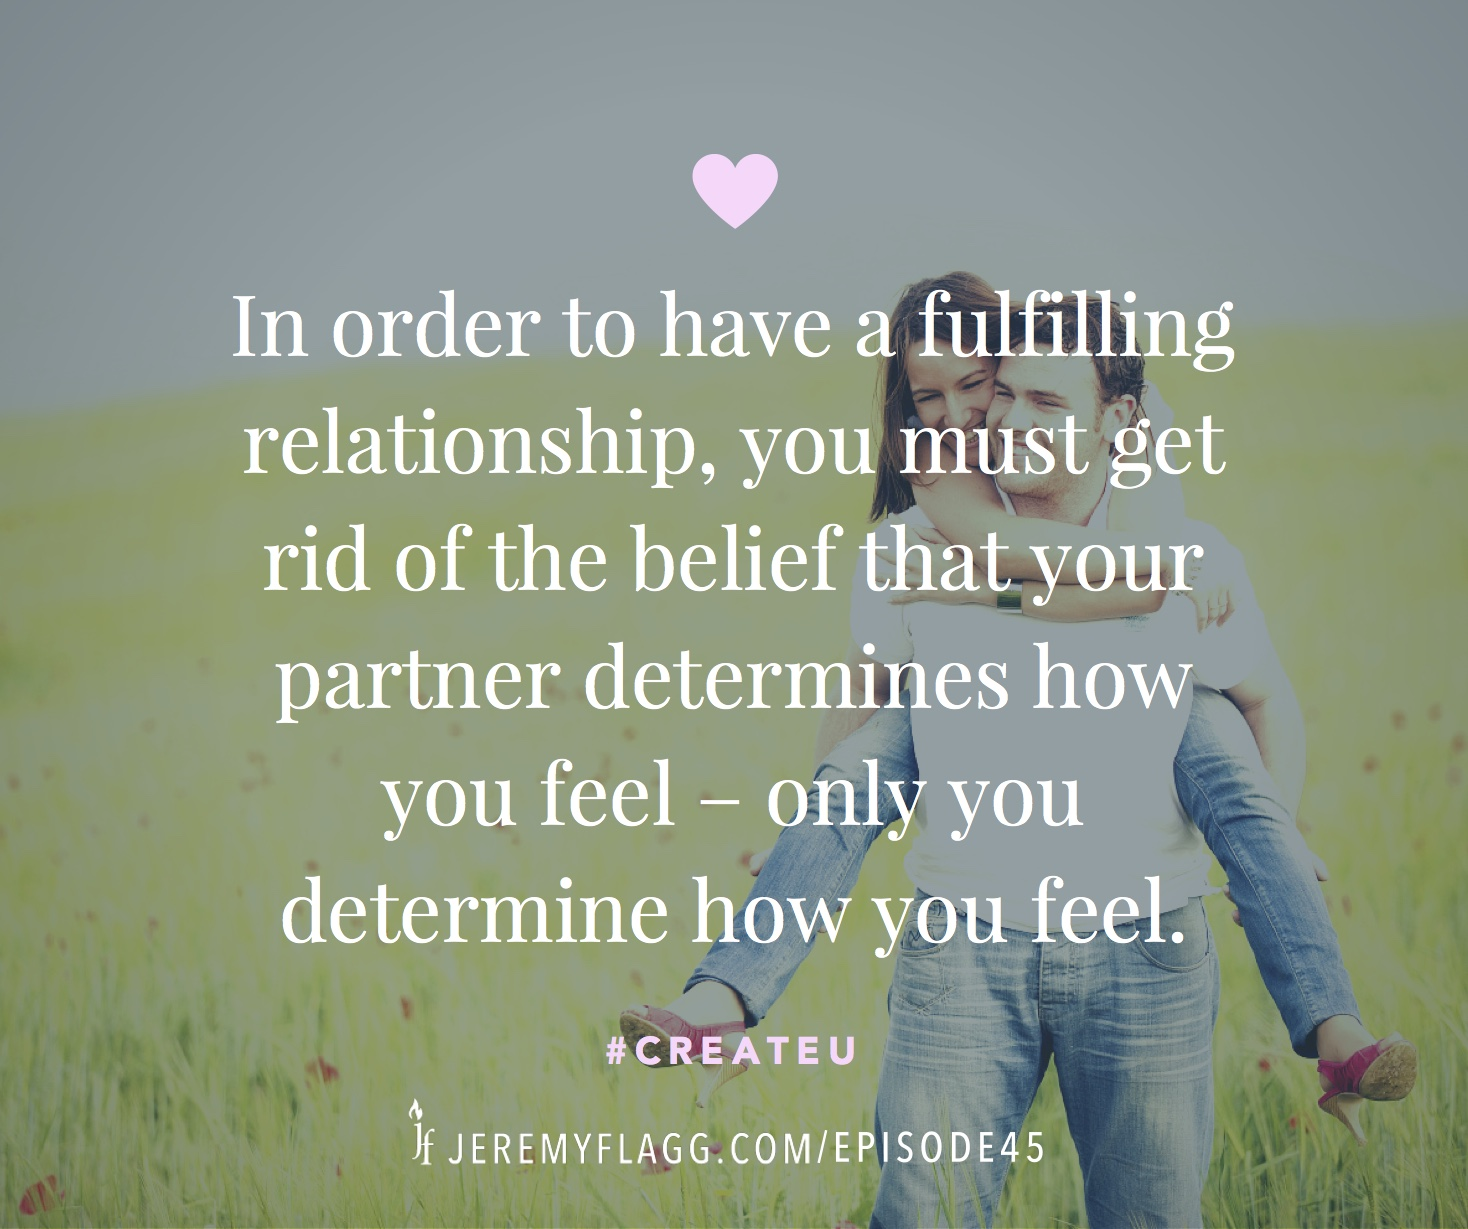 Fulfilling-relationship-you-determine-how-you-feel-Jeremy-Flagg-quote-FB